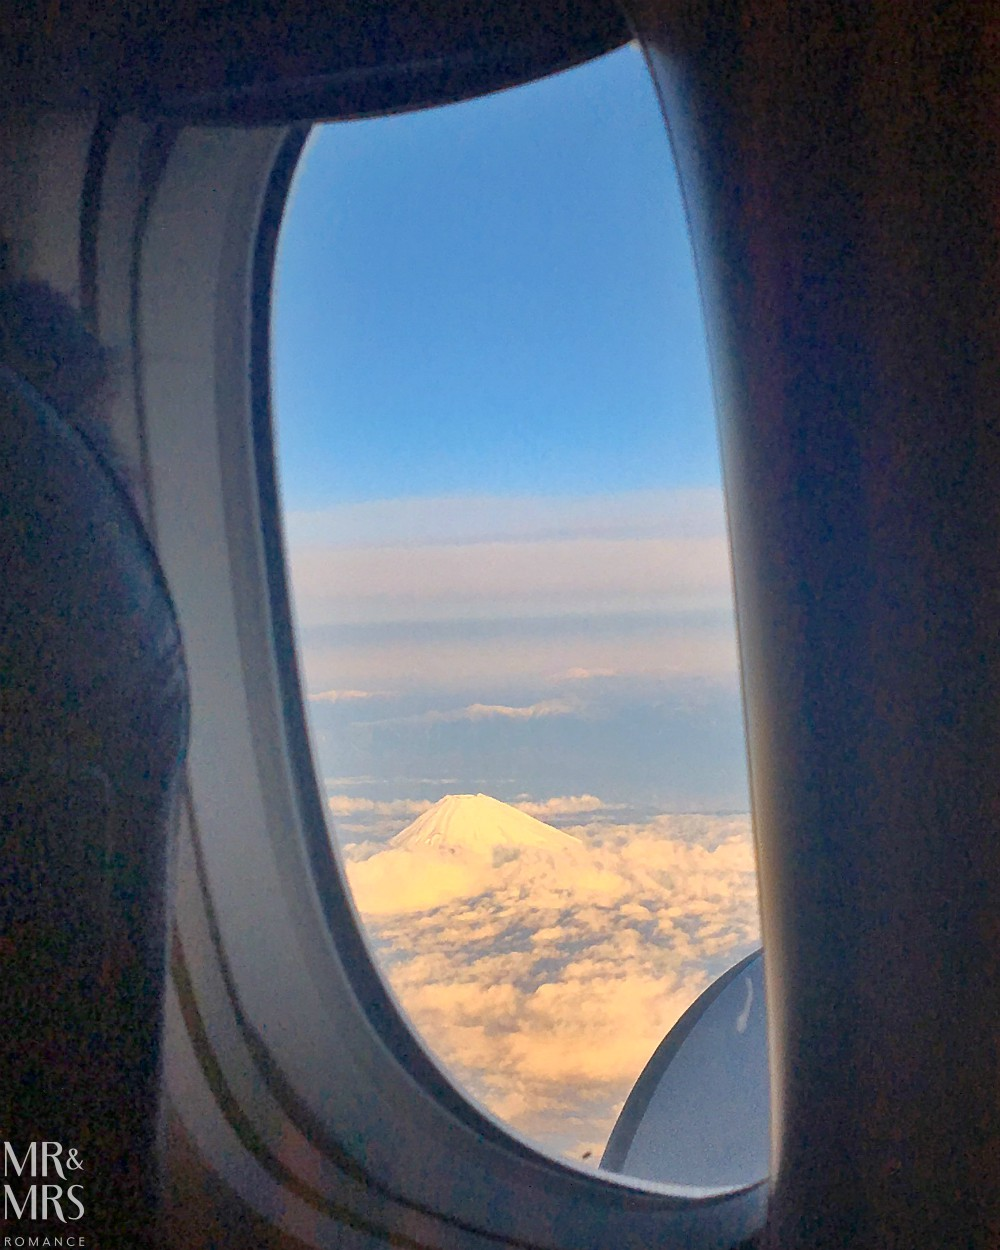 How to get to Okinawa, Japan - Mount Fuji from the plane window